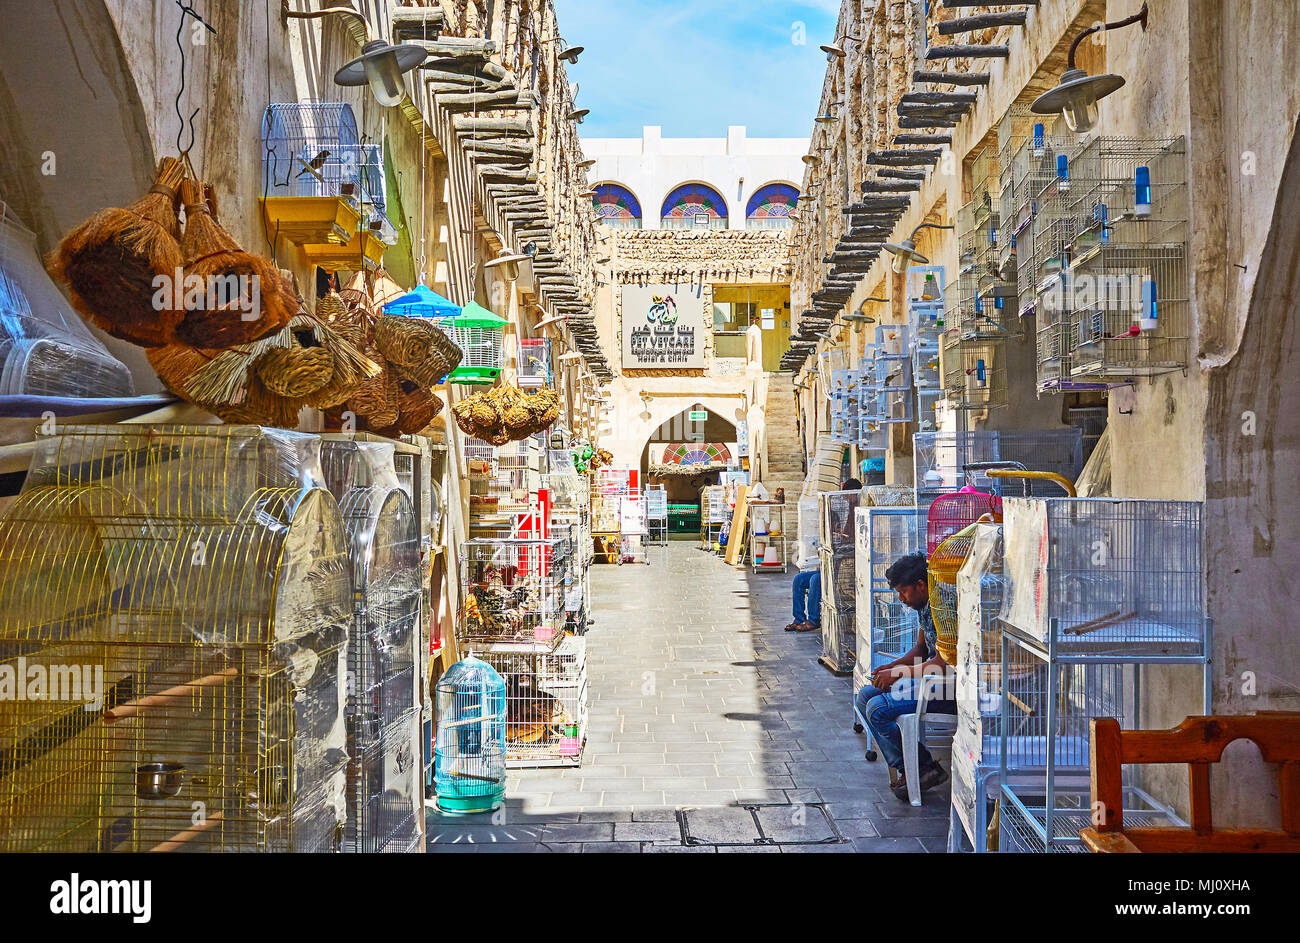 DOHA, QATAR - FEBRUARY 13, 2018: The stores in the narrow alley of